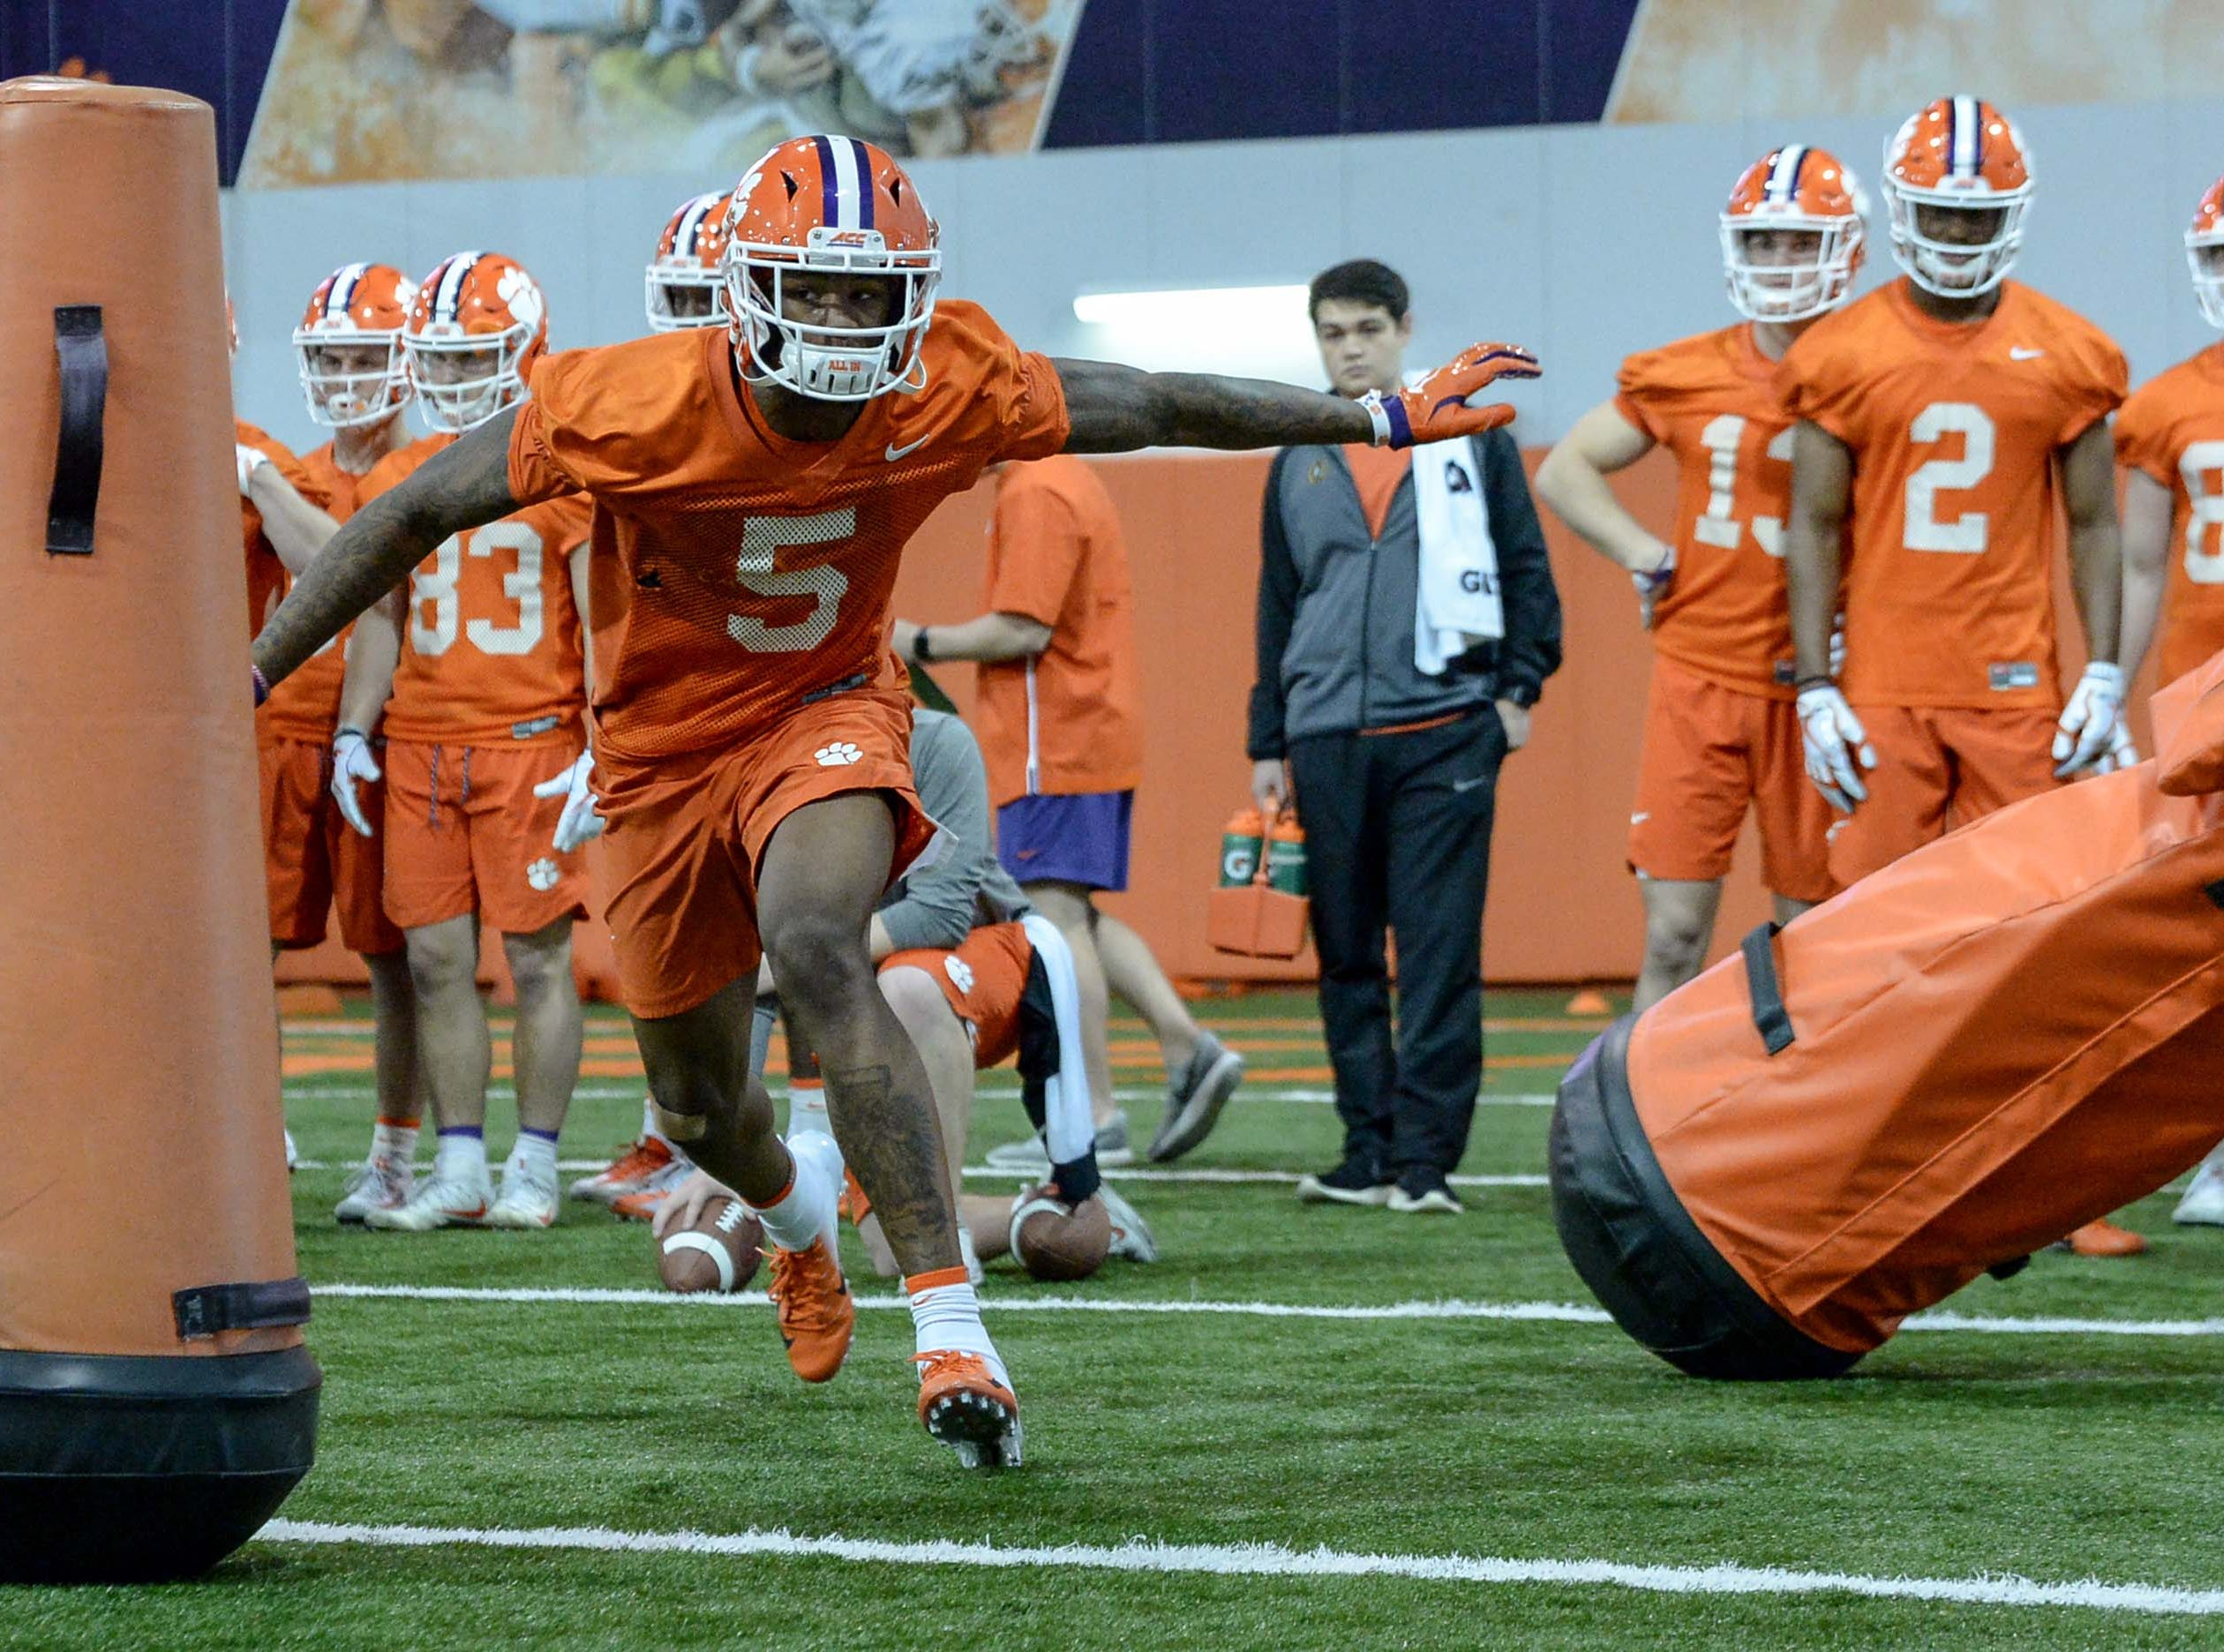 Clemson wide receiver Tee Higgins (5) runs in a drill during practice at the Poe Indoor Facility in Clemson Friday.